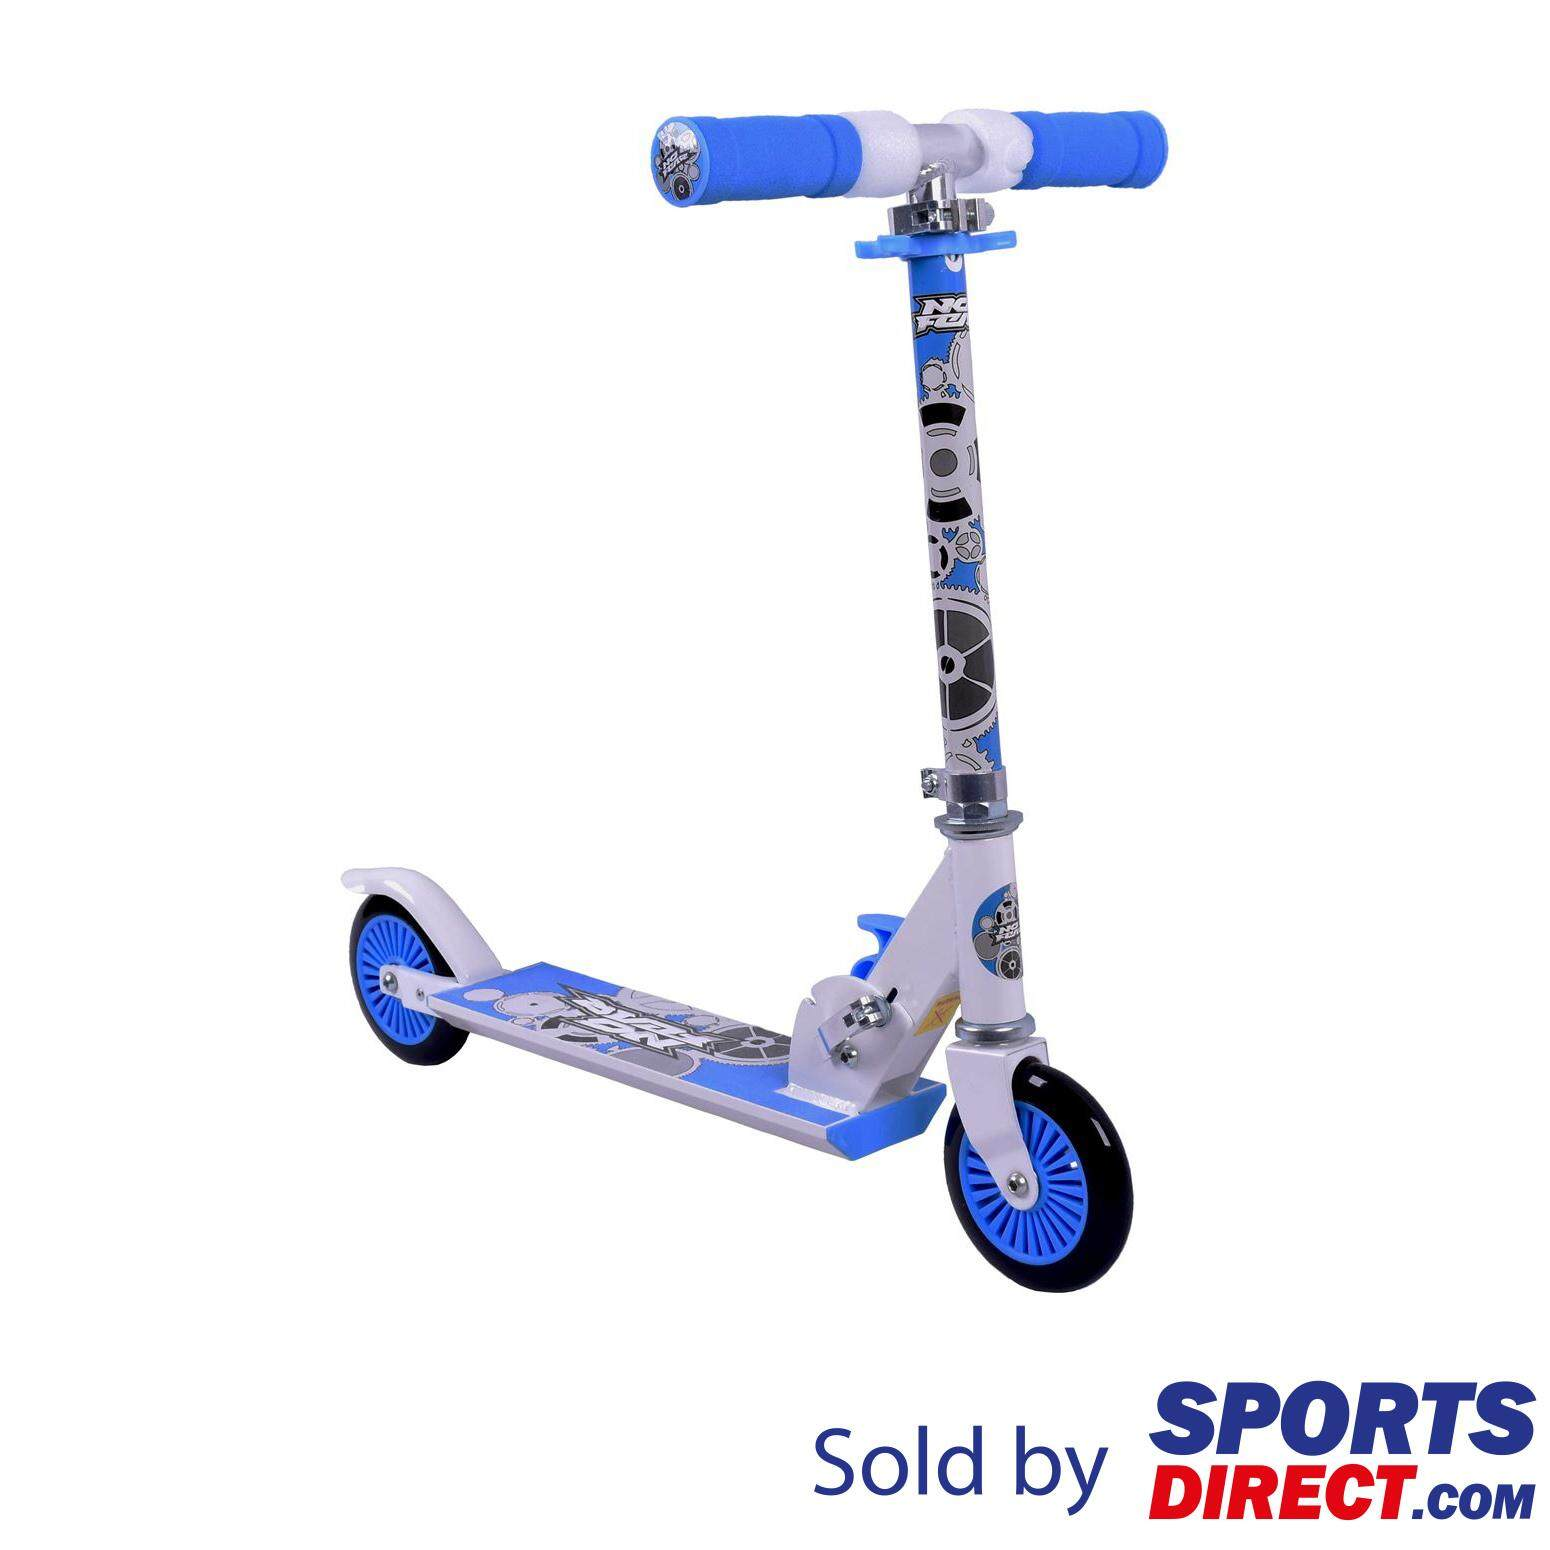 No Fear Kids Scooter (black/blue) By Sports Direct Mst Sdn Bhd